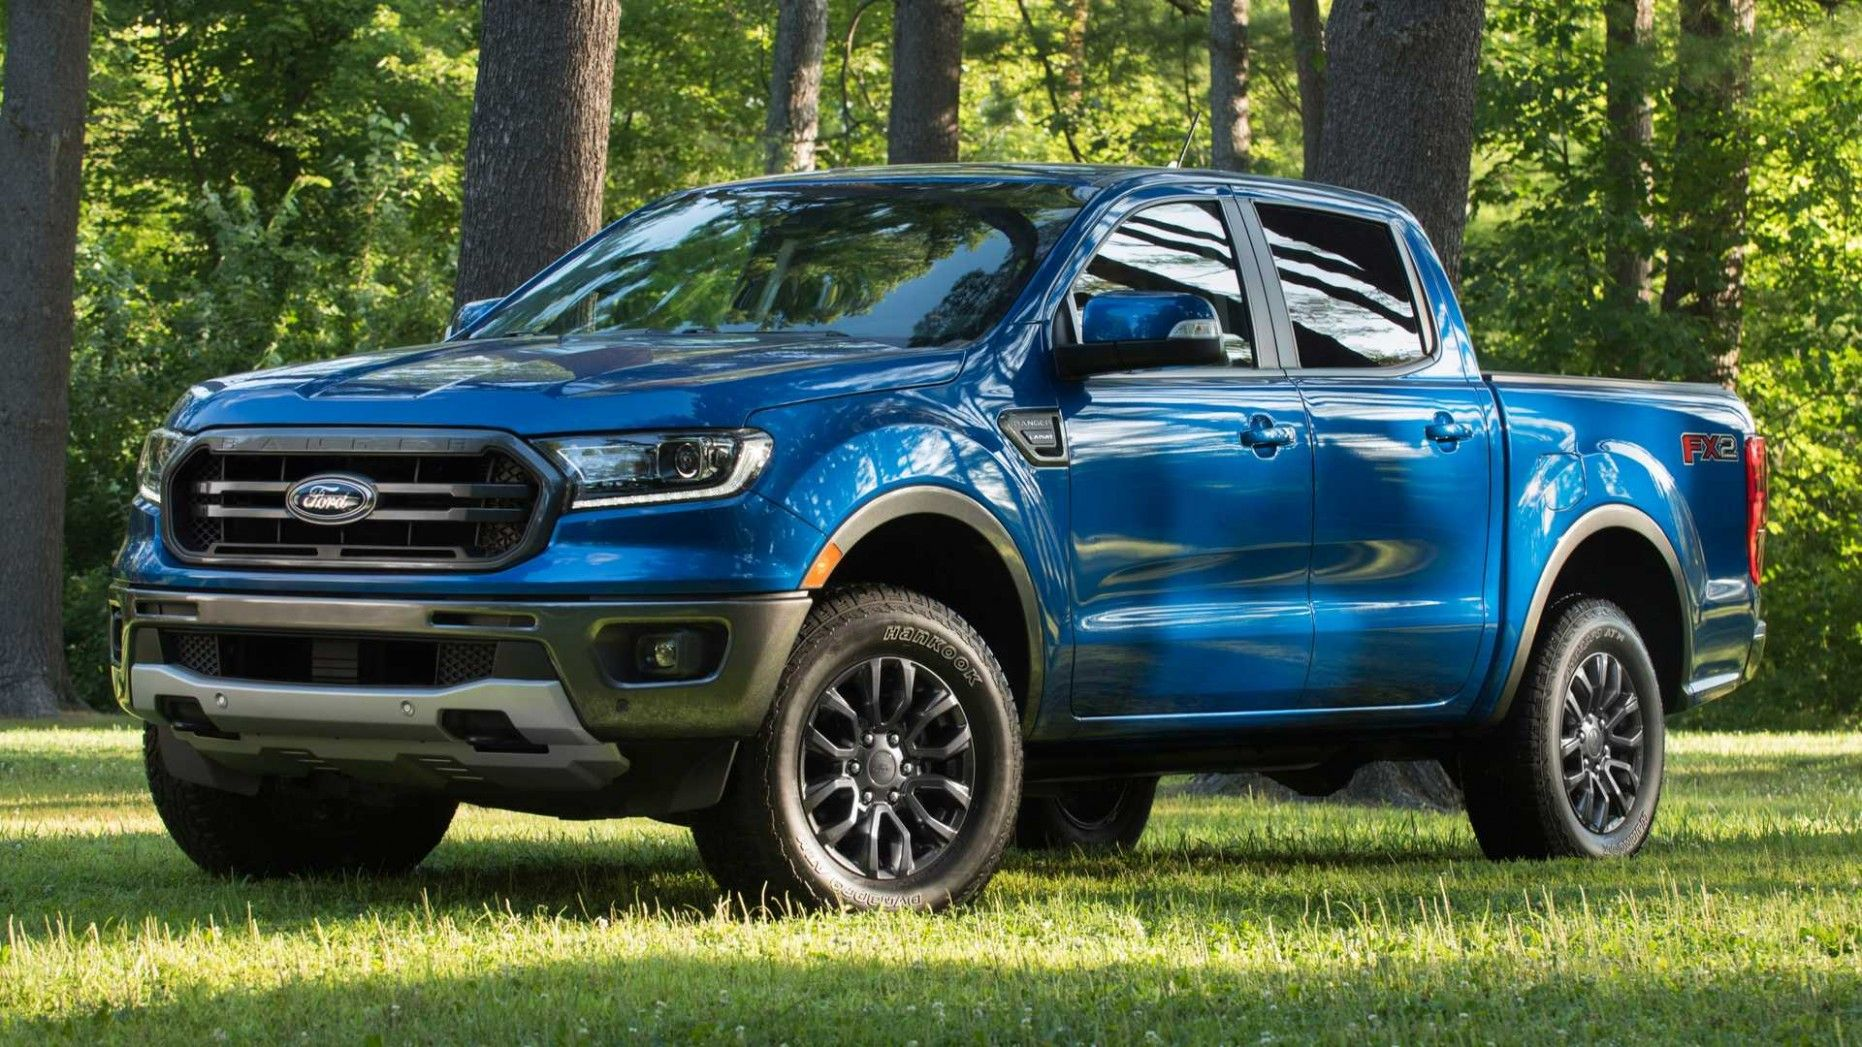 Ford Wildtrak 2020 Concept And Review Ford Ranger 2019 Ford Ranger Ford Ranger Pickup